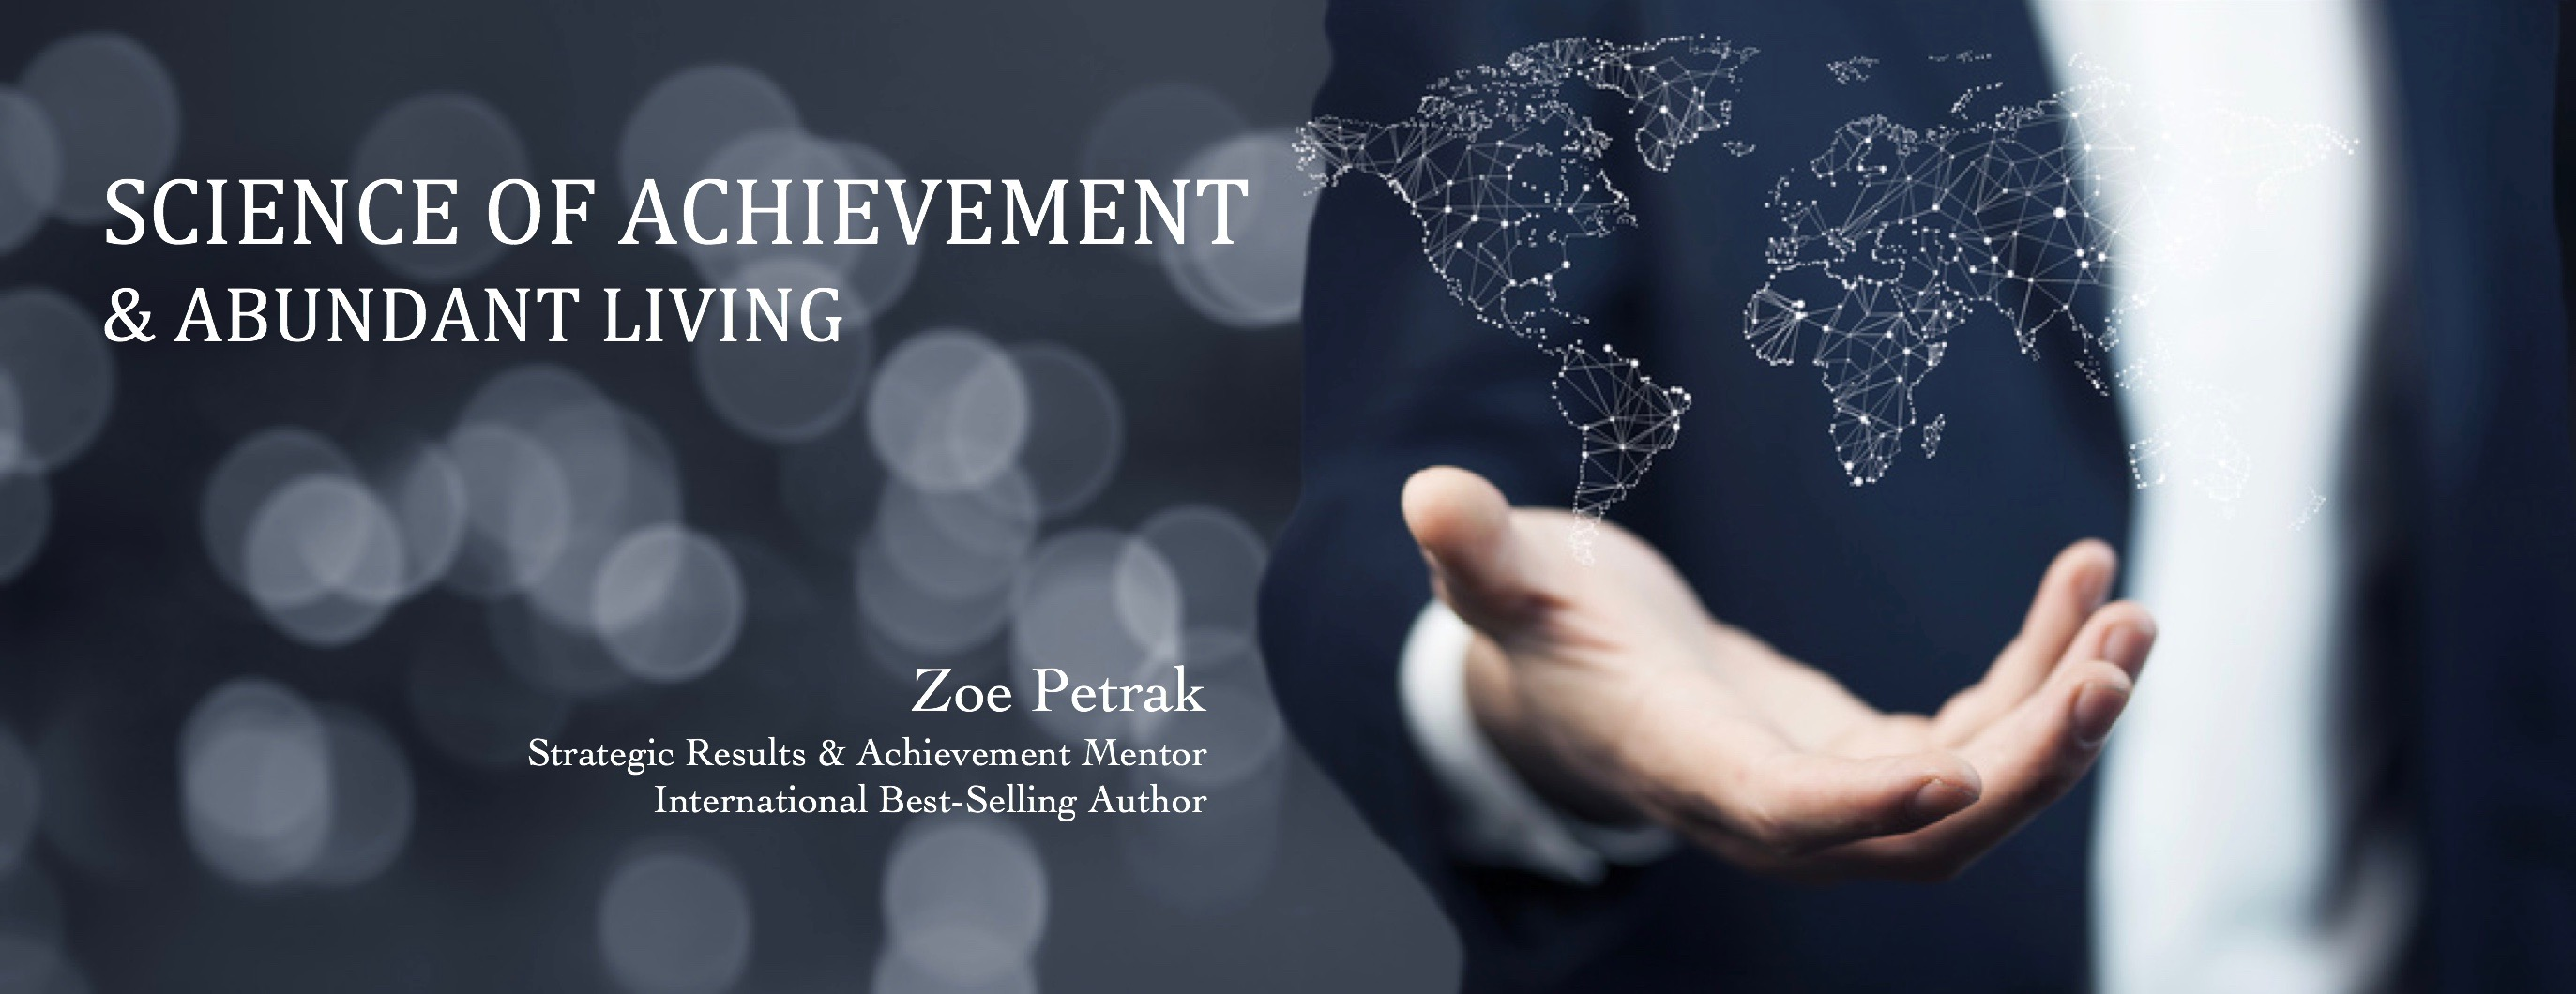 Zoe-Petrak-Success-Results-Mentor